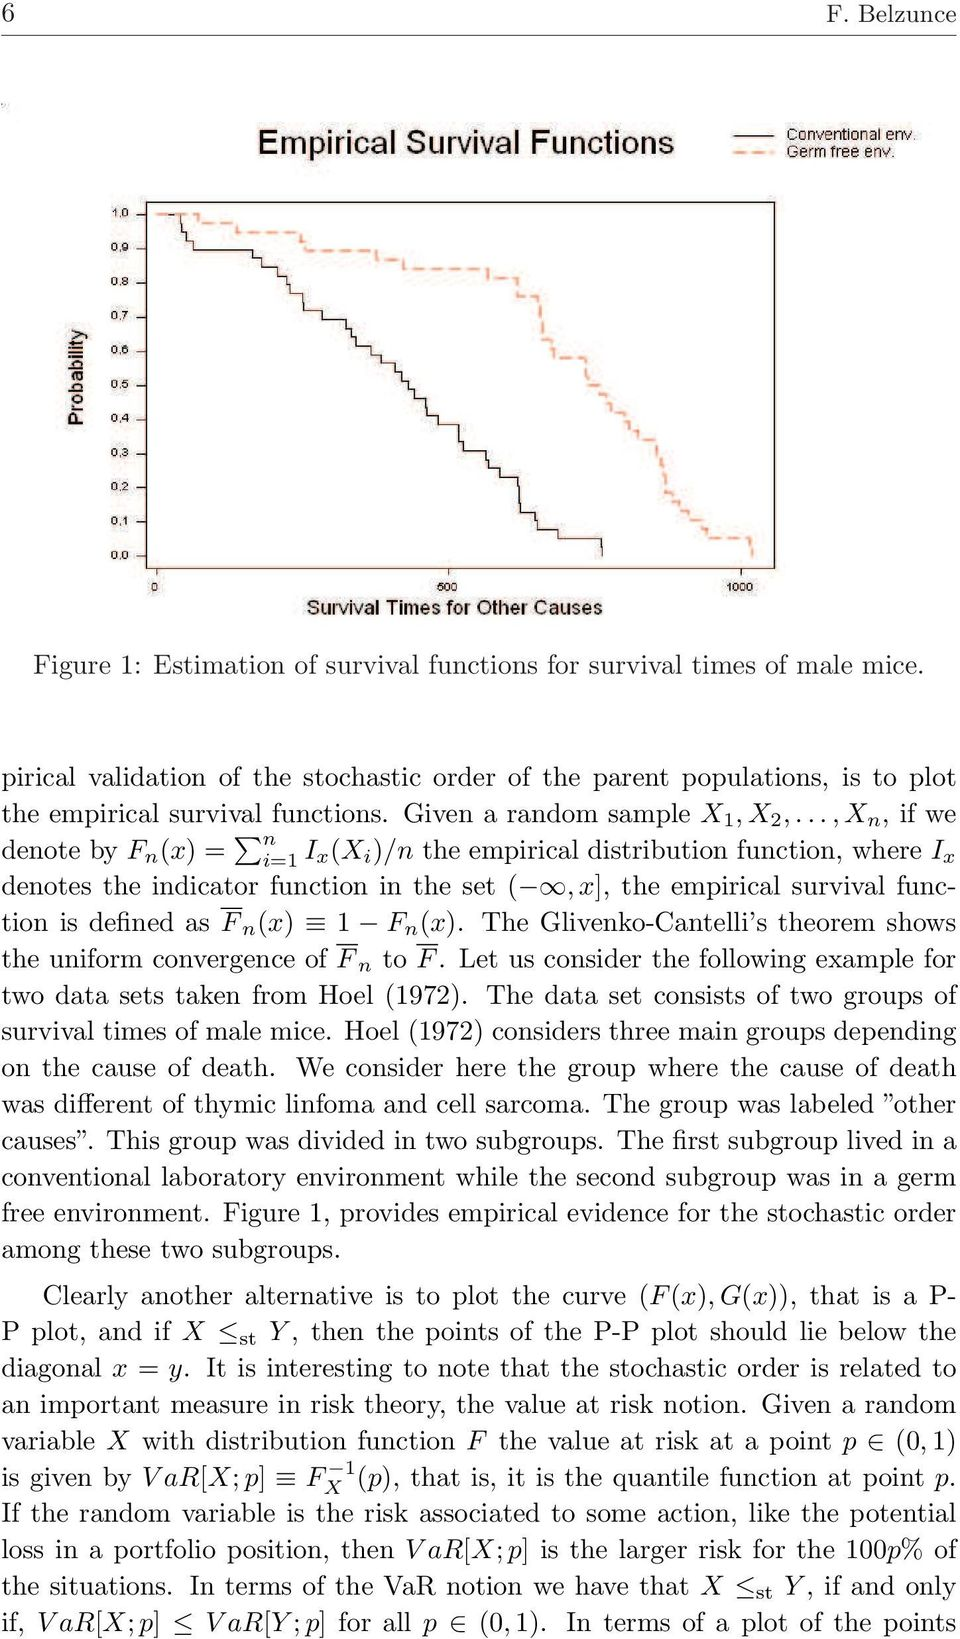 .., X n, if we denote by F n (x) = n i=1 I x(x i )/n the empirical distribution function, where I x denotes the indicator function in the set (, x], the empirical survival function is defined as F n